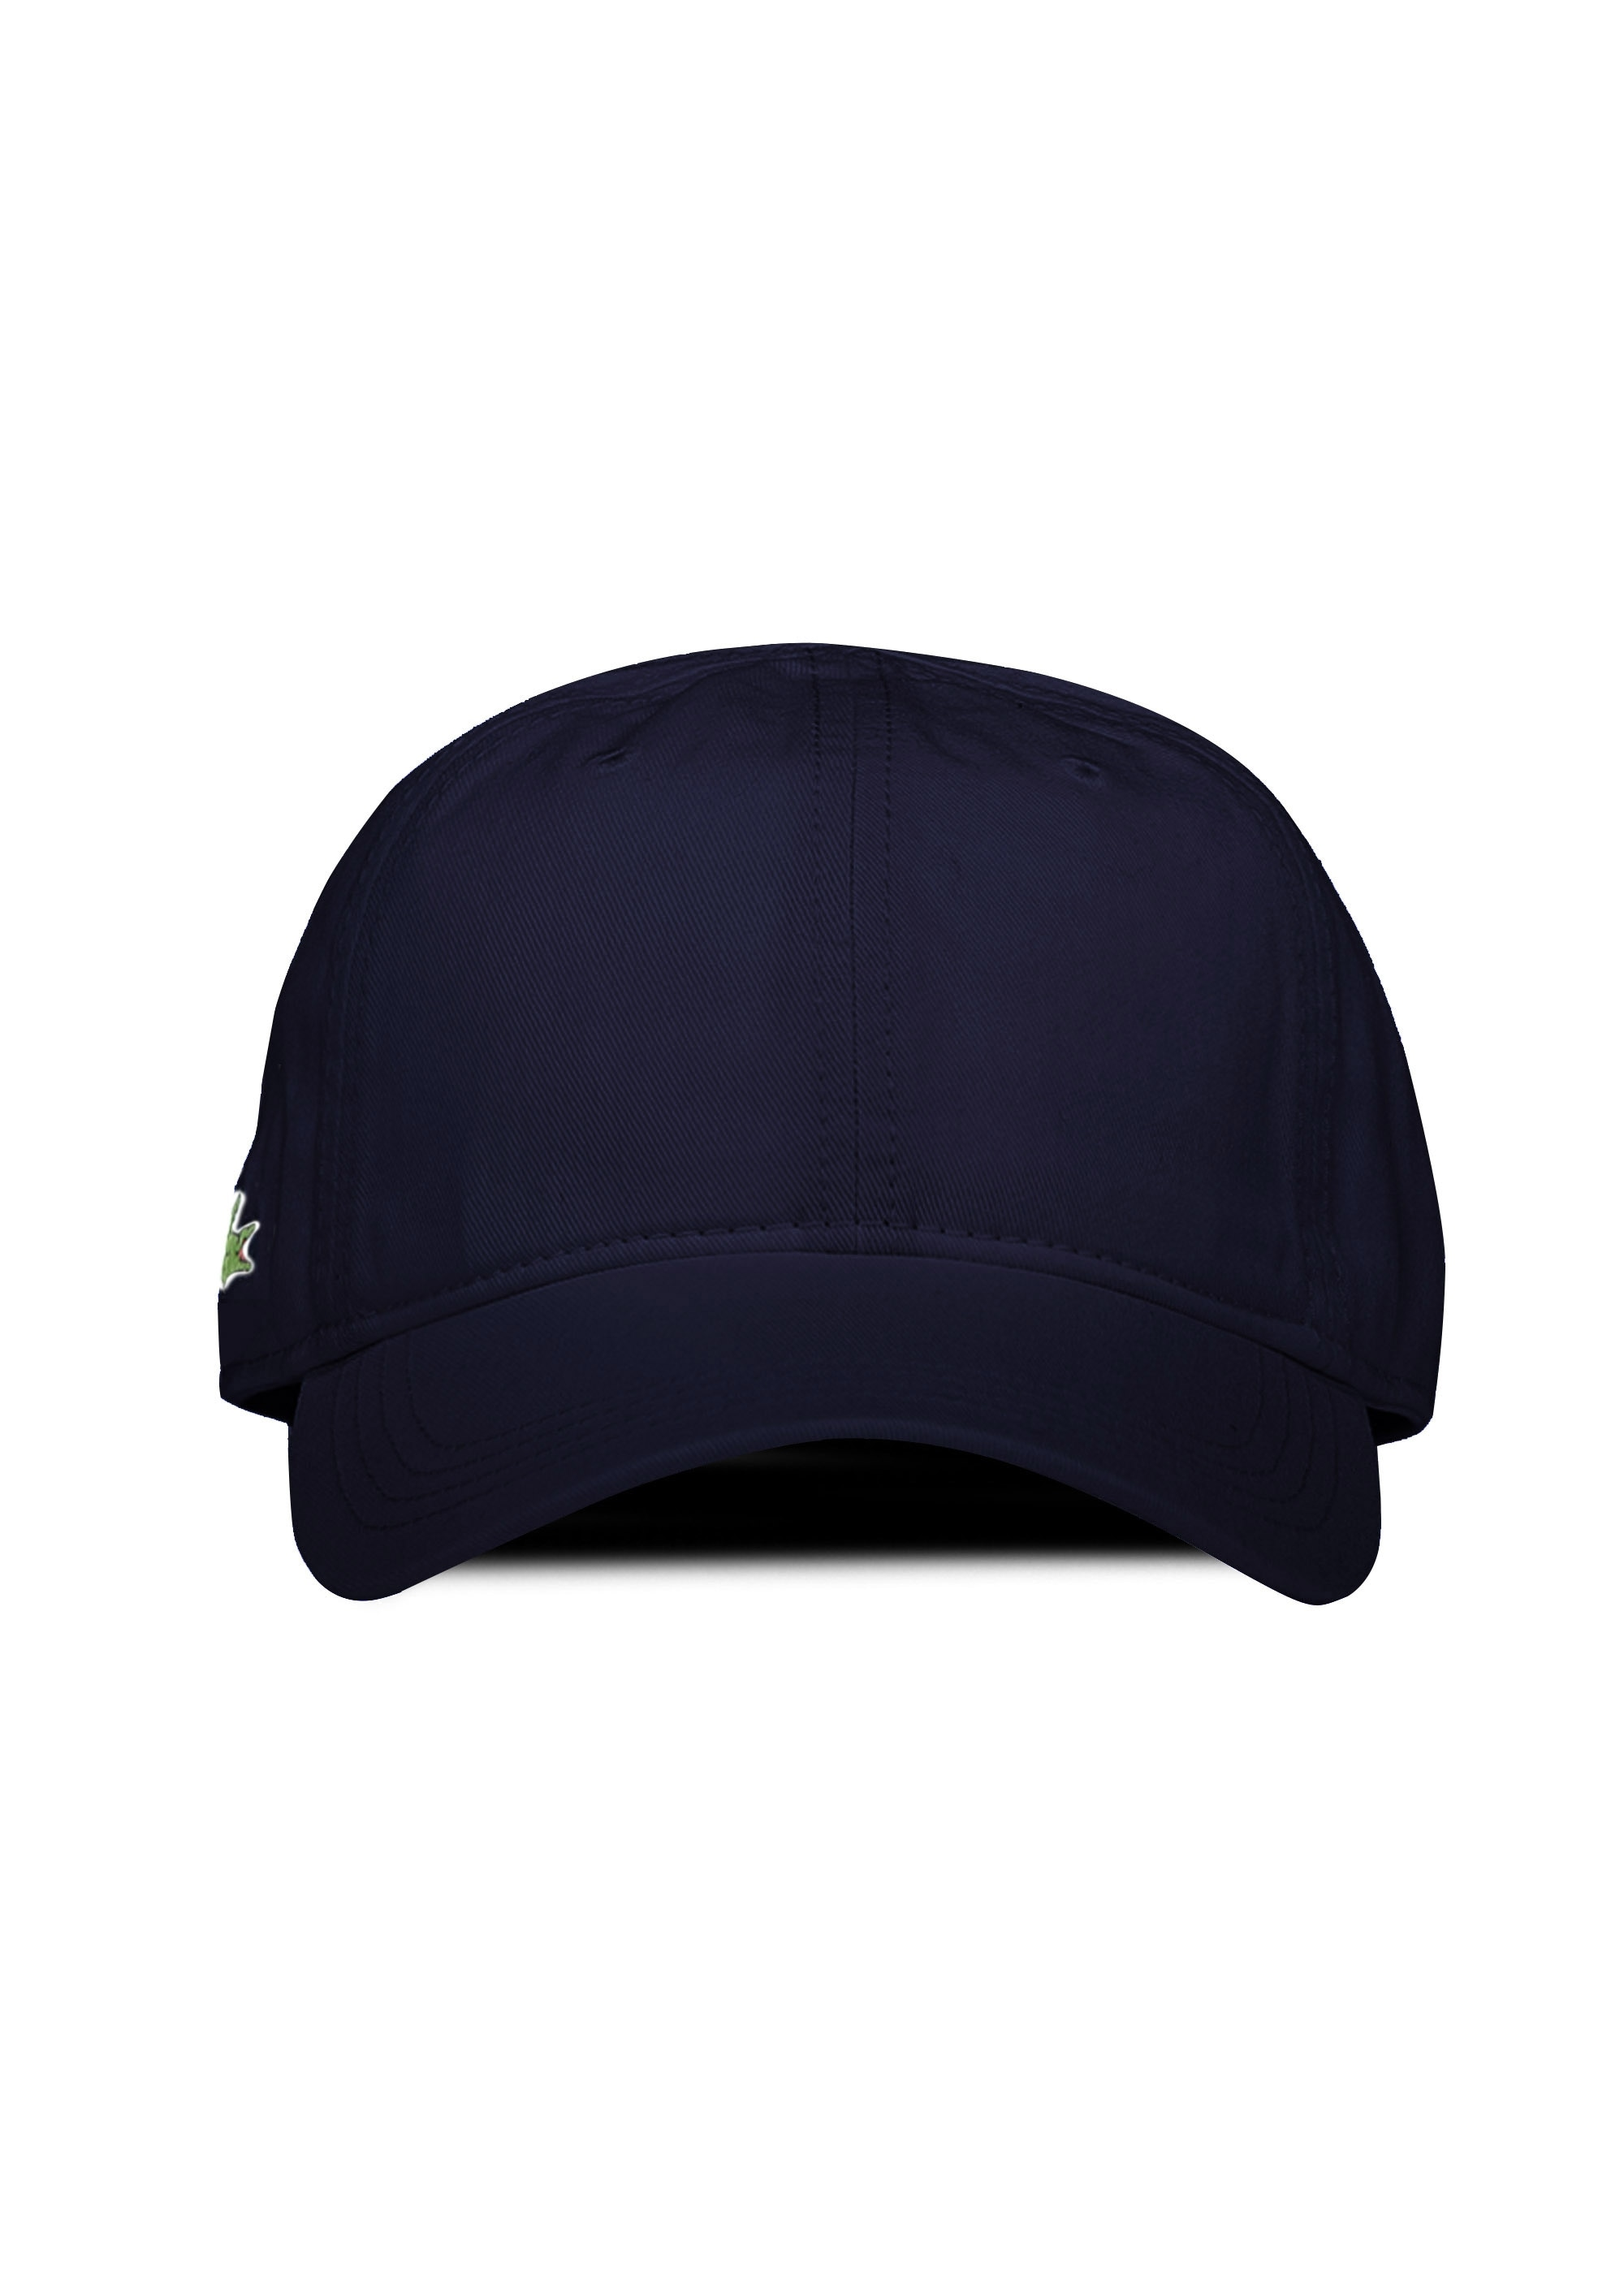 Lacoste Gabardine Cap - Navy Blue - Headwear from Triads UK b8c950c4d393